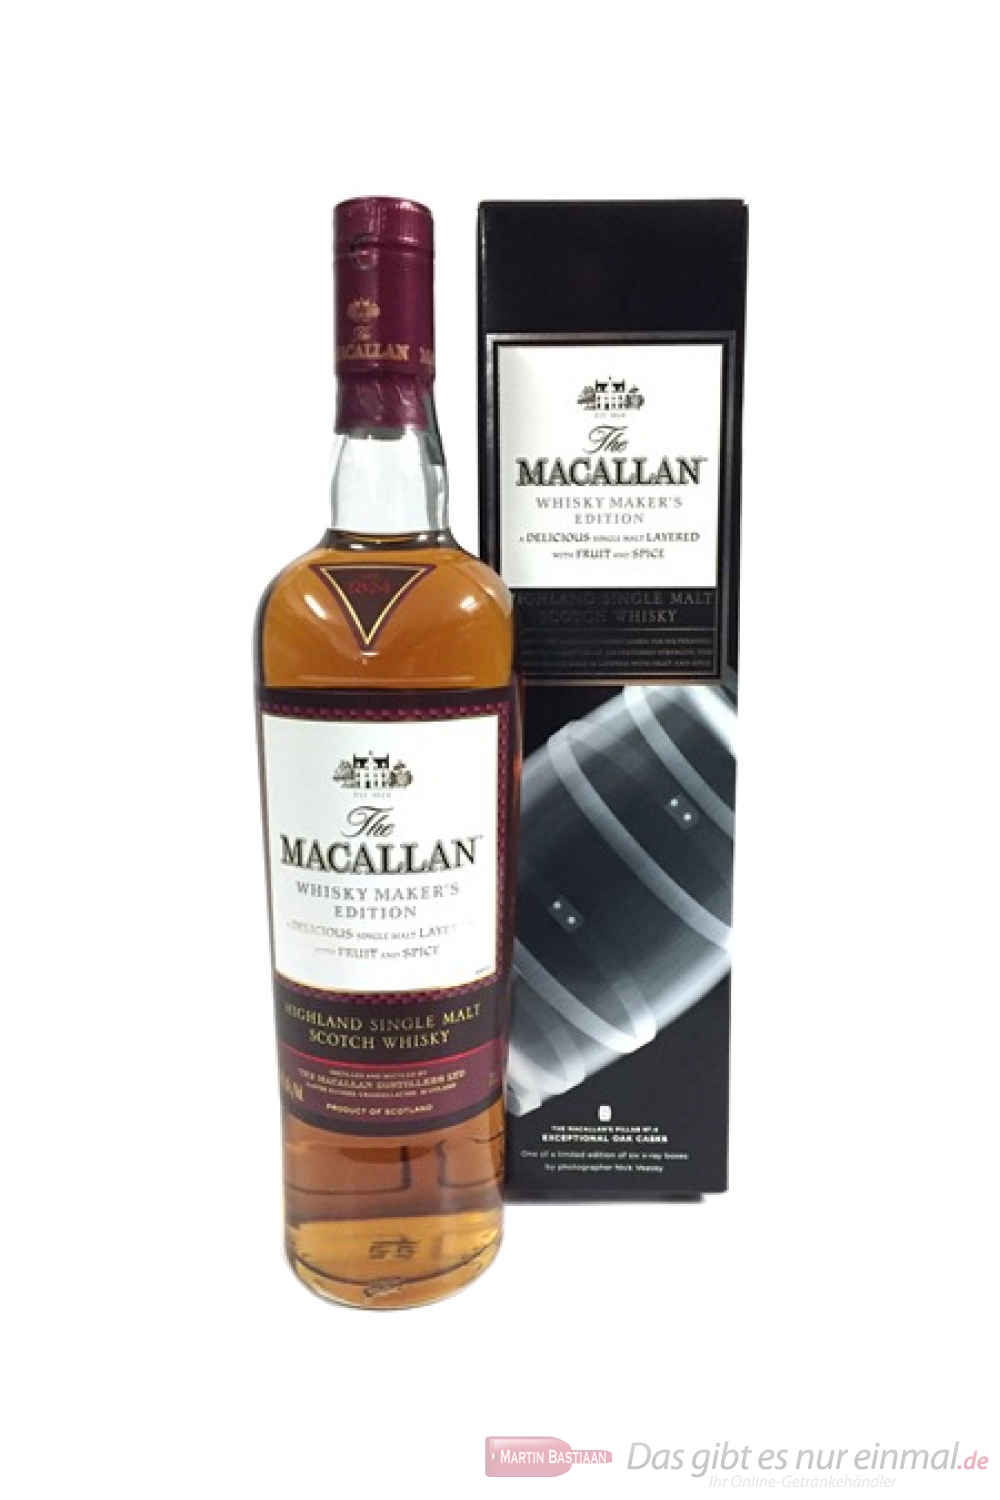 The Macallan Whisky Maker´s Edition Exceptional Oak Casks